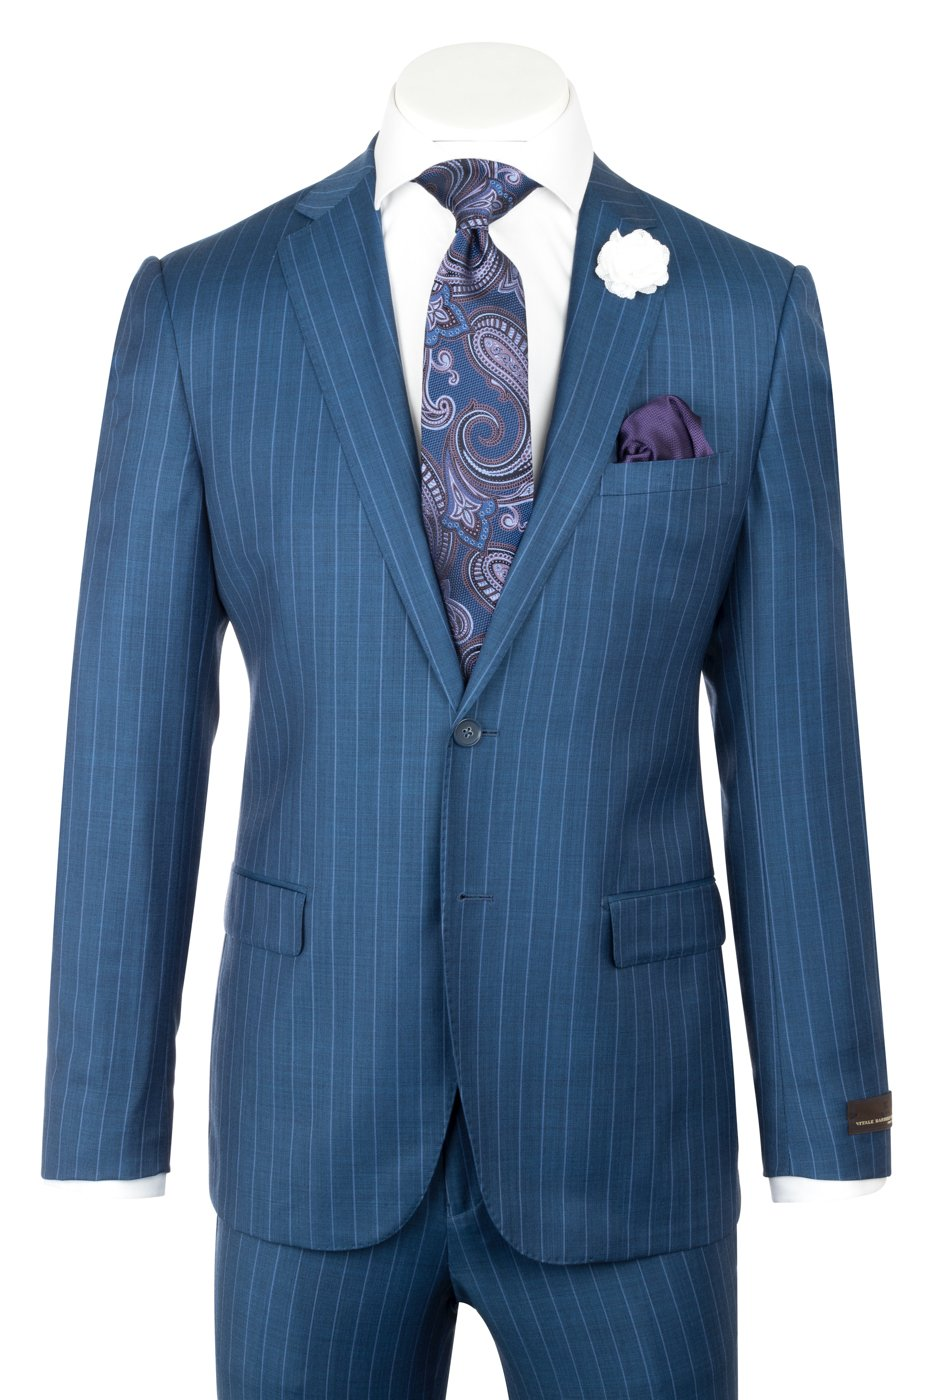 DOLCETTO Modern Fit, Teal Blue with stripe, Pure Wool Suit by VITALE BARBERIS CANONICO Cloth by Canaletto Menswear CV9211